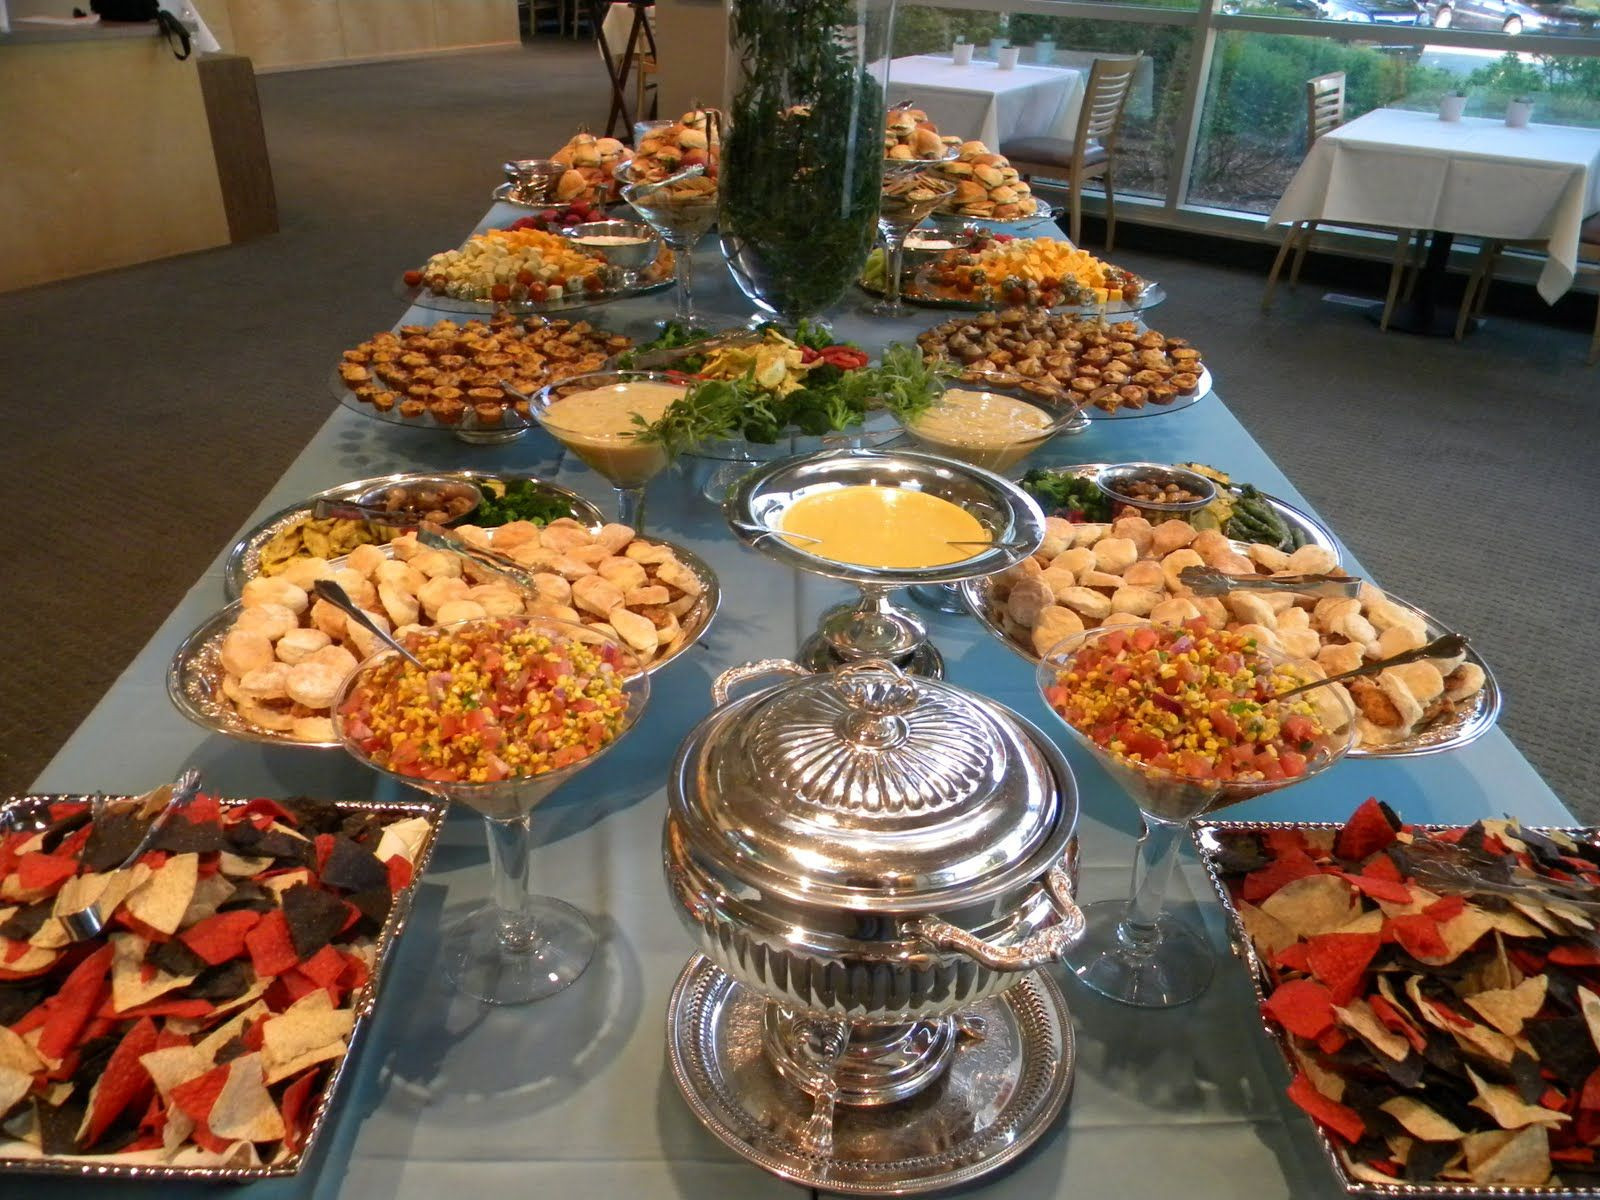 Mexican Dinner Party Menu Ideas  Mexican food buffet I like the idea of having a buffet so